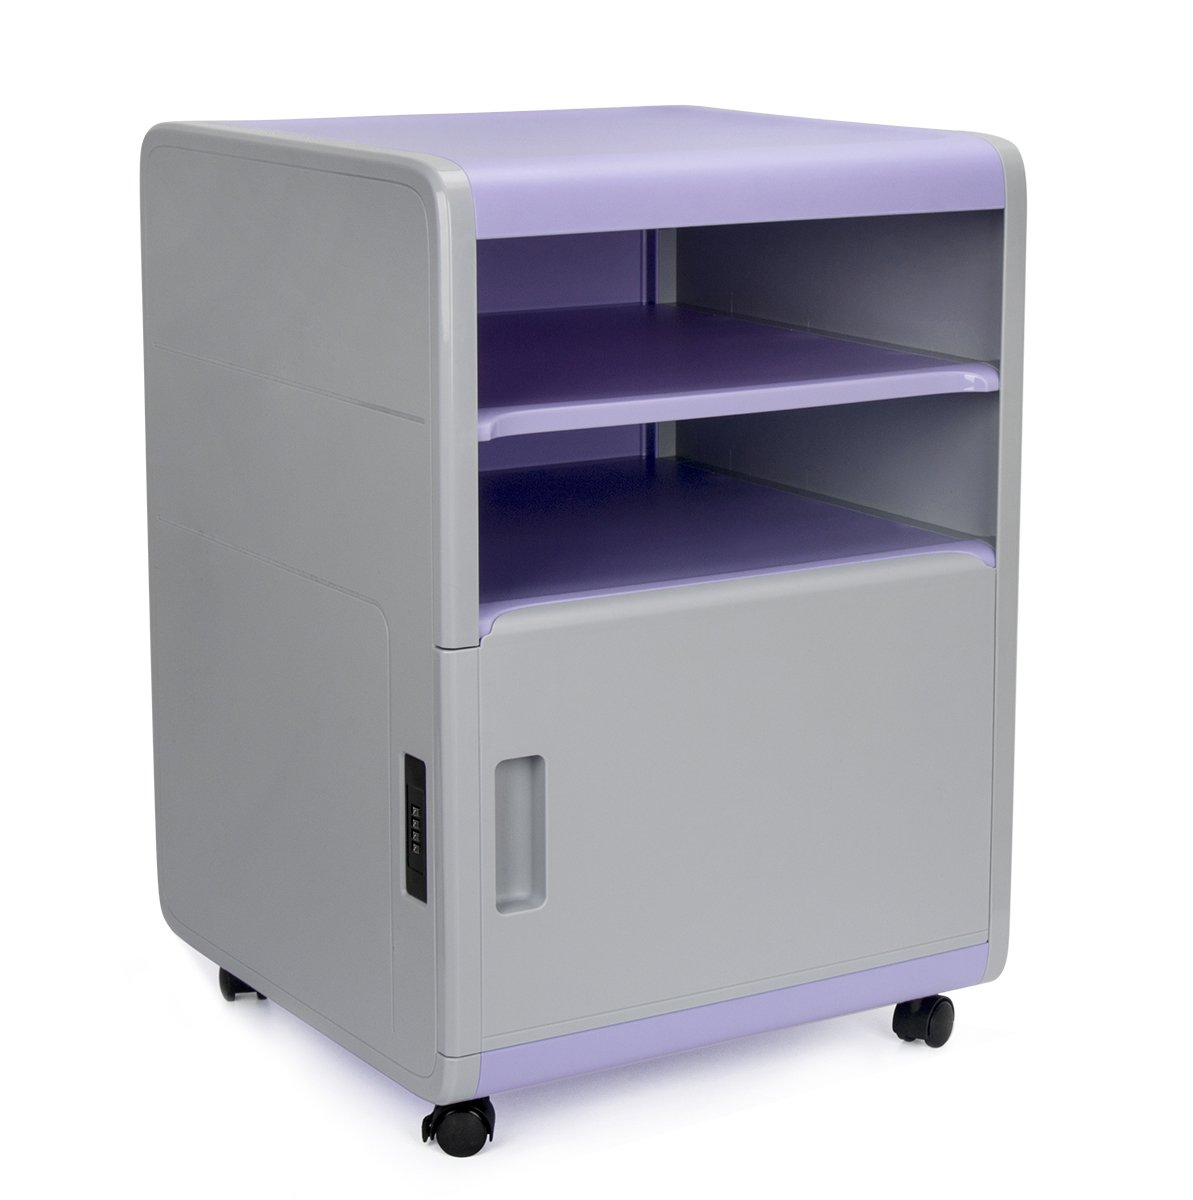 Wondrous Mobile File Cabinet With Combination Lock Evertop Storage Home Interior And Landscaping Pimpapssignezvosmurscom